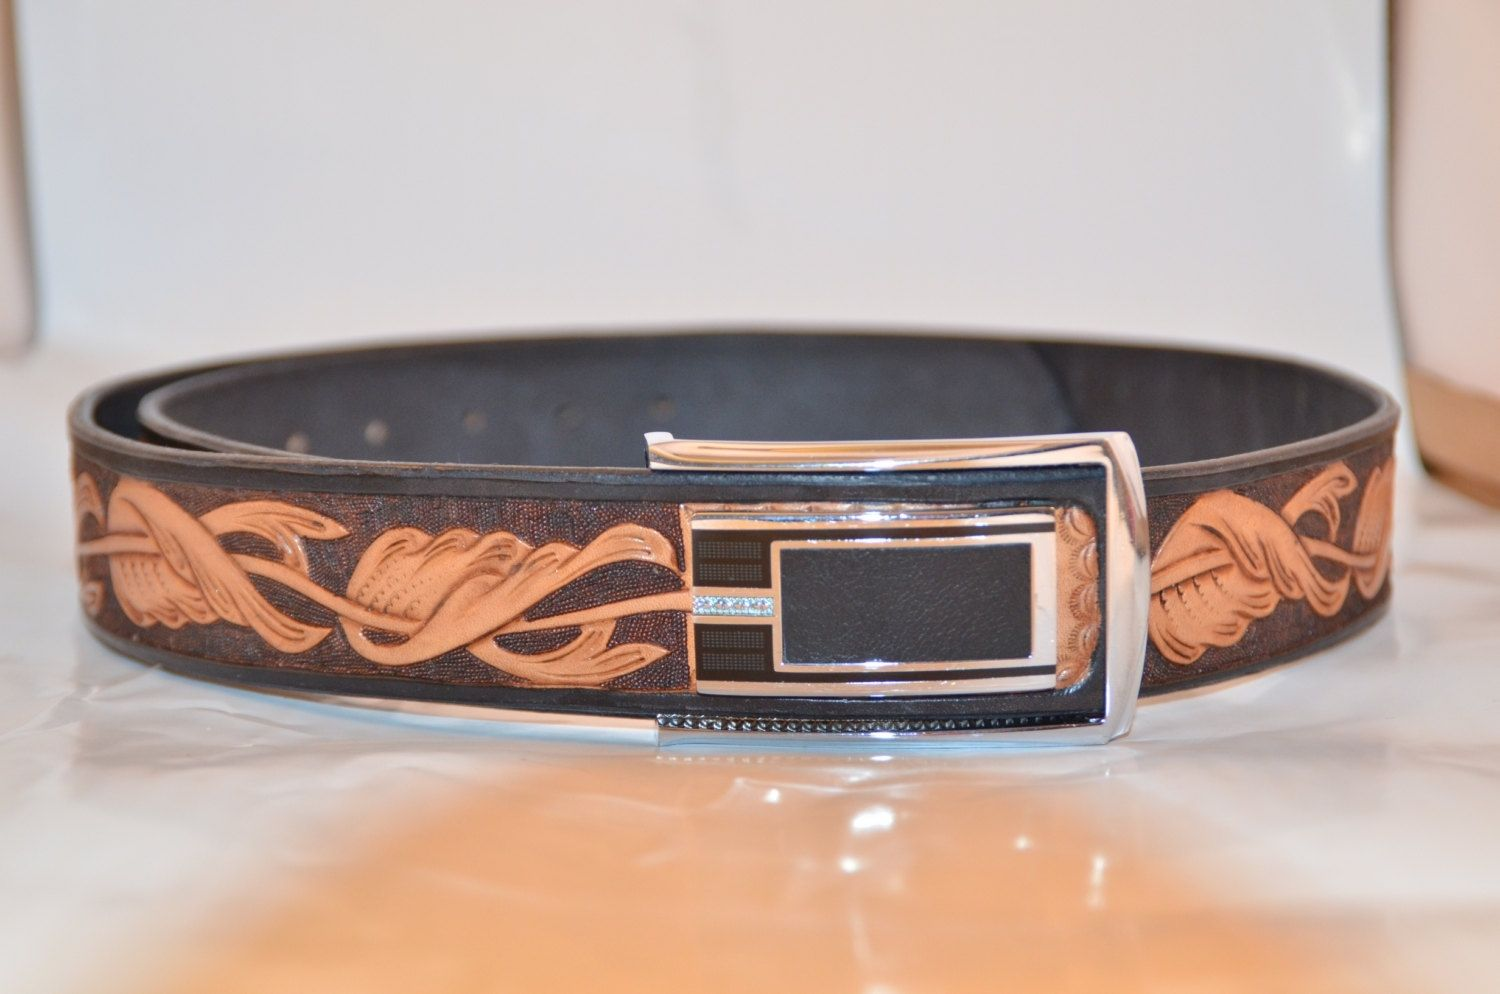 Handmade carved leather belt by rzleathercraft